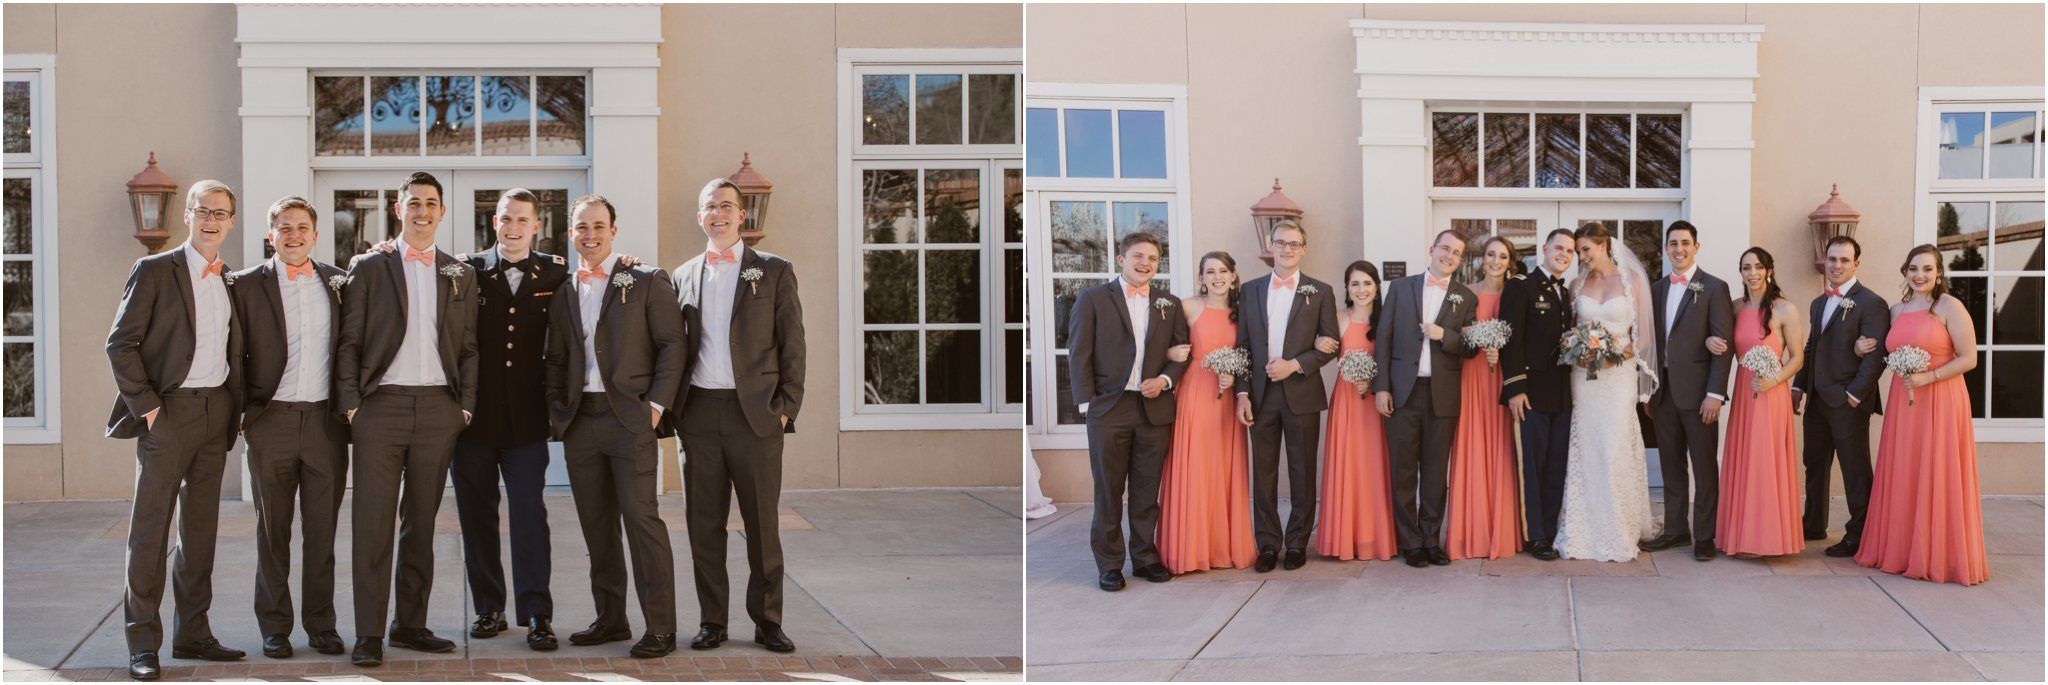 32Blue Rose Photography_ Albuquerque Wedding Photographer_ Santa Fe Wedding Photographers